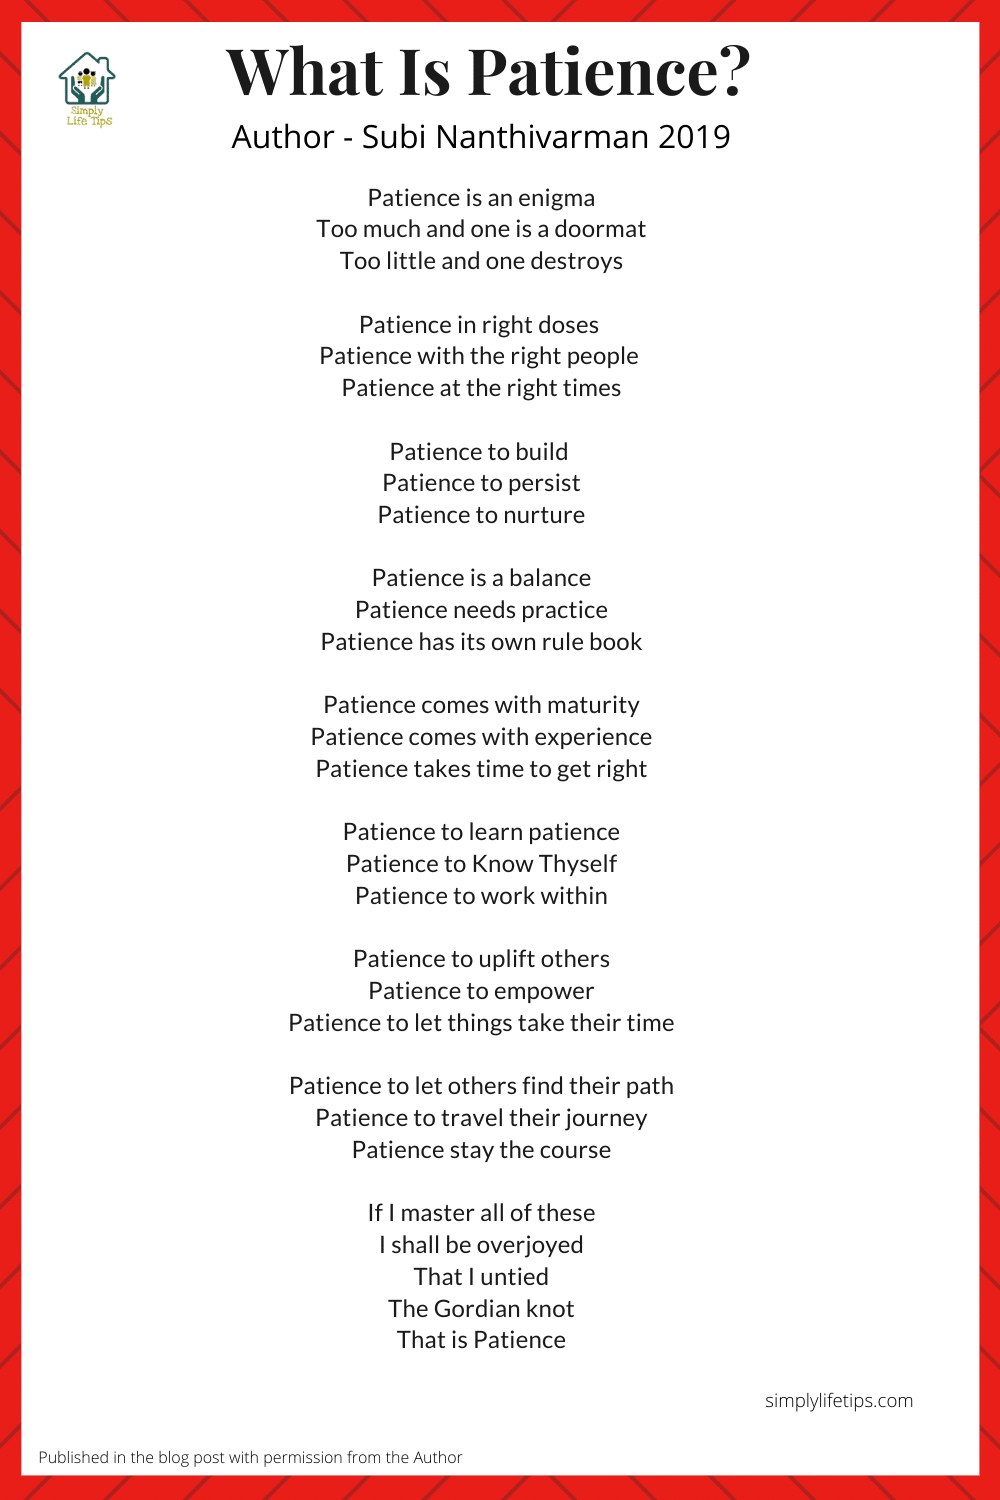 What Is Patience? Poem